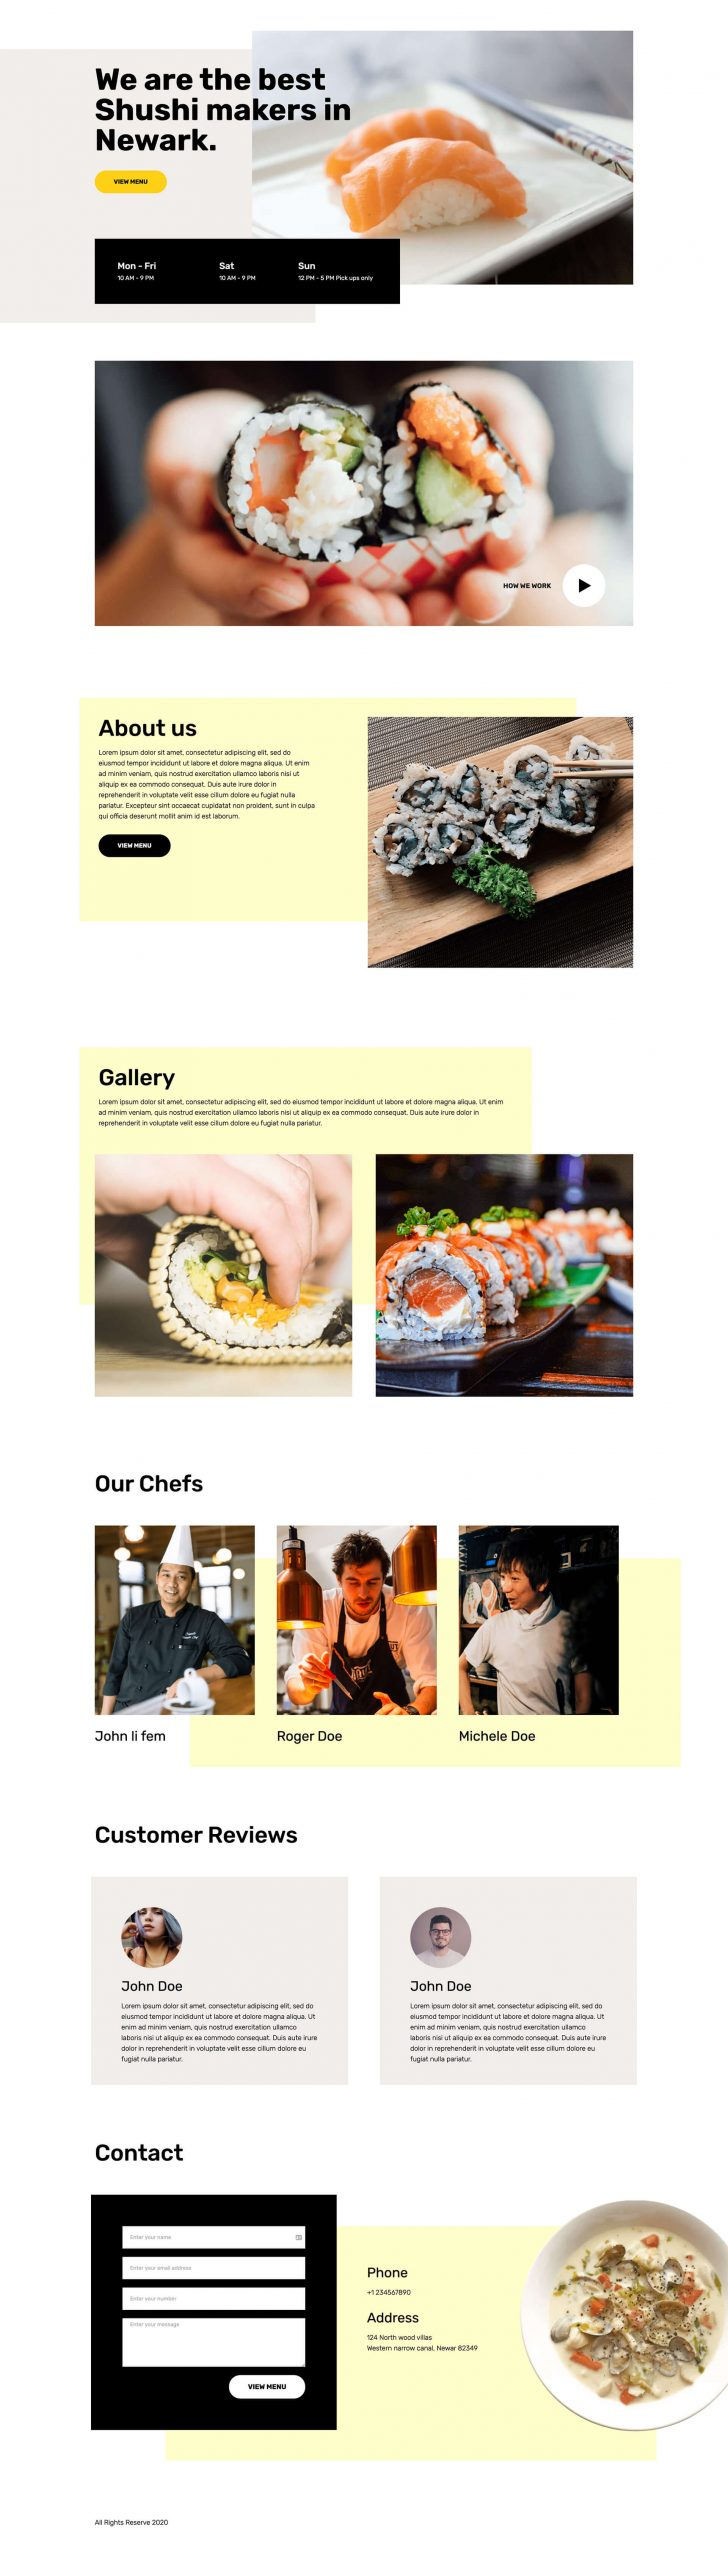 PowerPack Elements Template - Restaurant